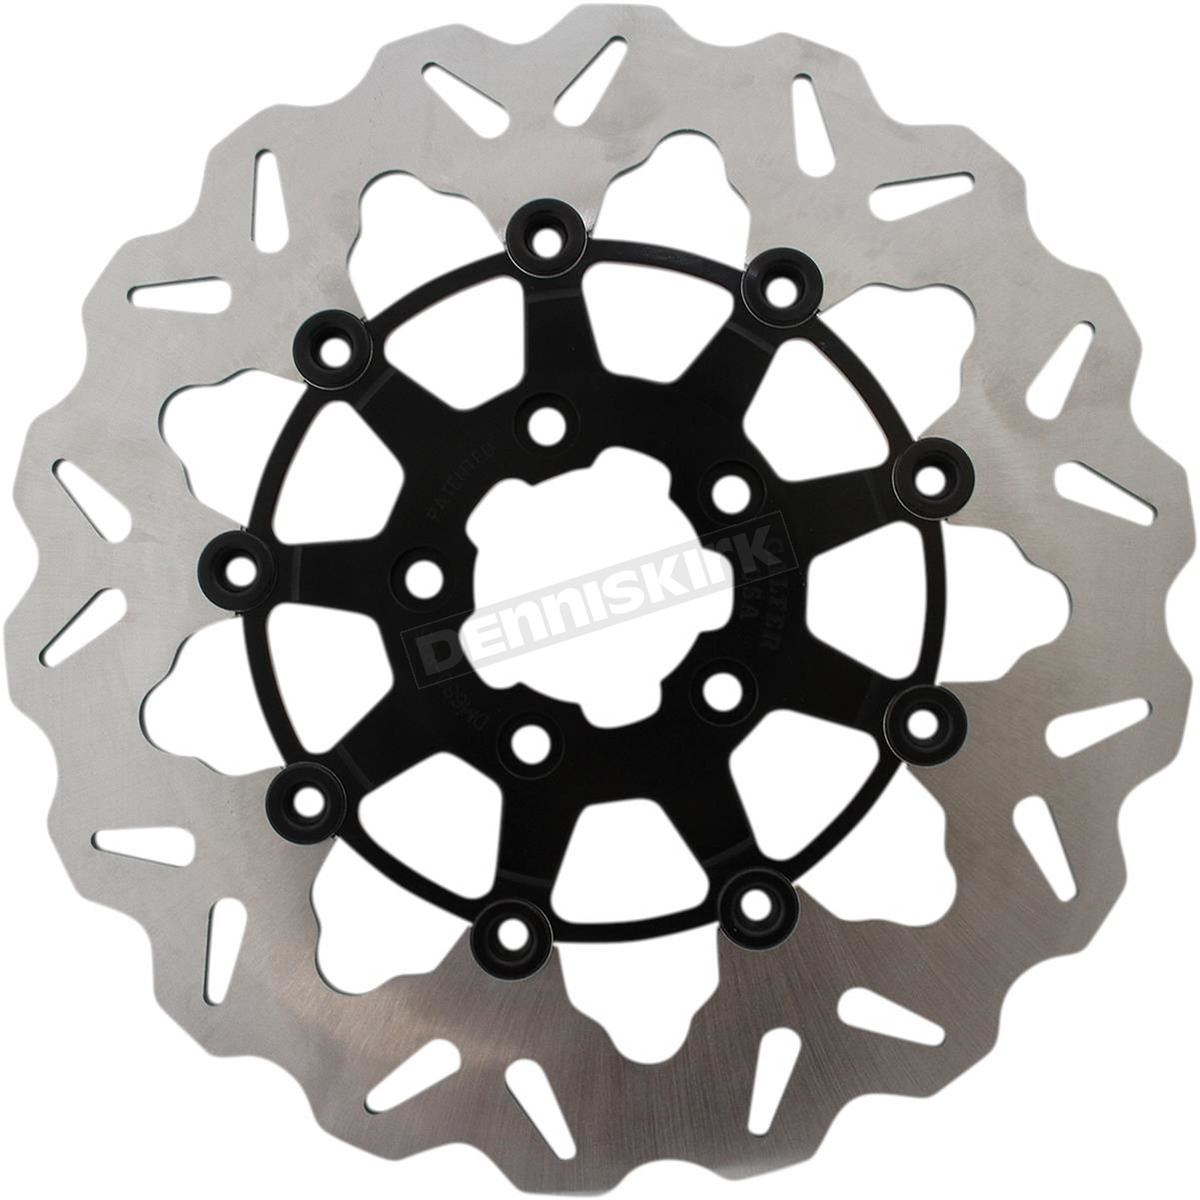 Full-Floating Front Wave Brake Rotor - DF835CW-B